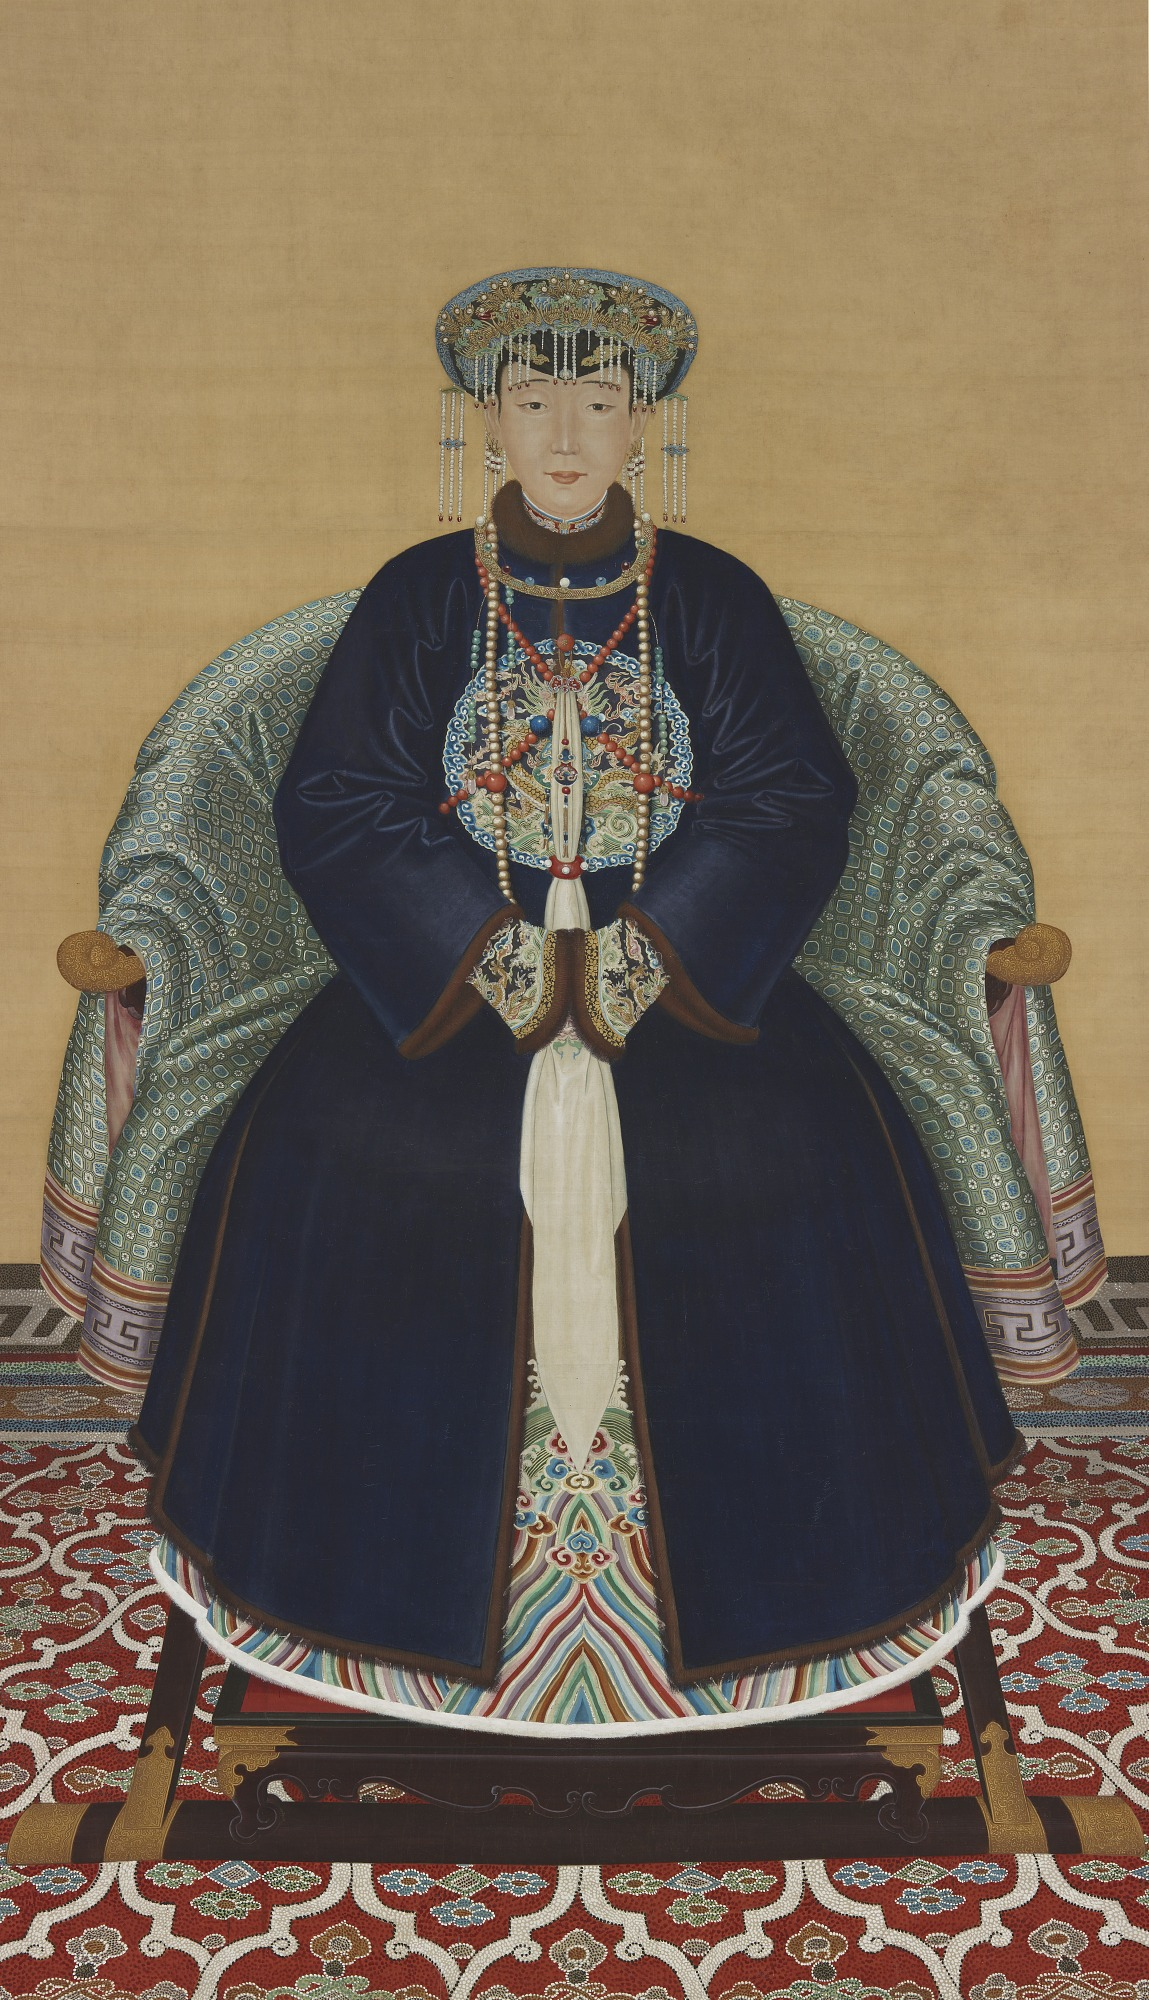 Ancestor portrait of Lady Wanyan, dressed in a blue robe and beaded headdress, seated on a light green fabric draped chair, on top of a red and white patterned carpet